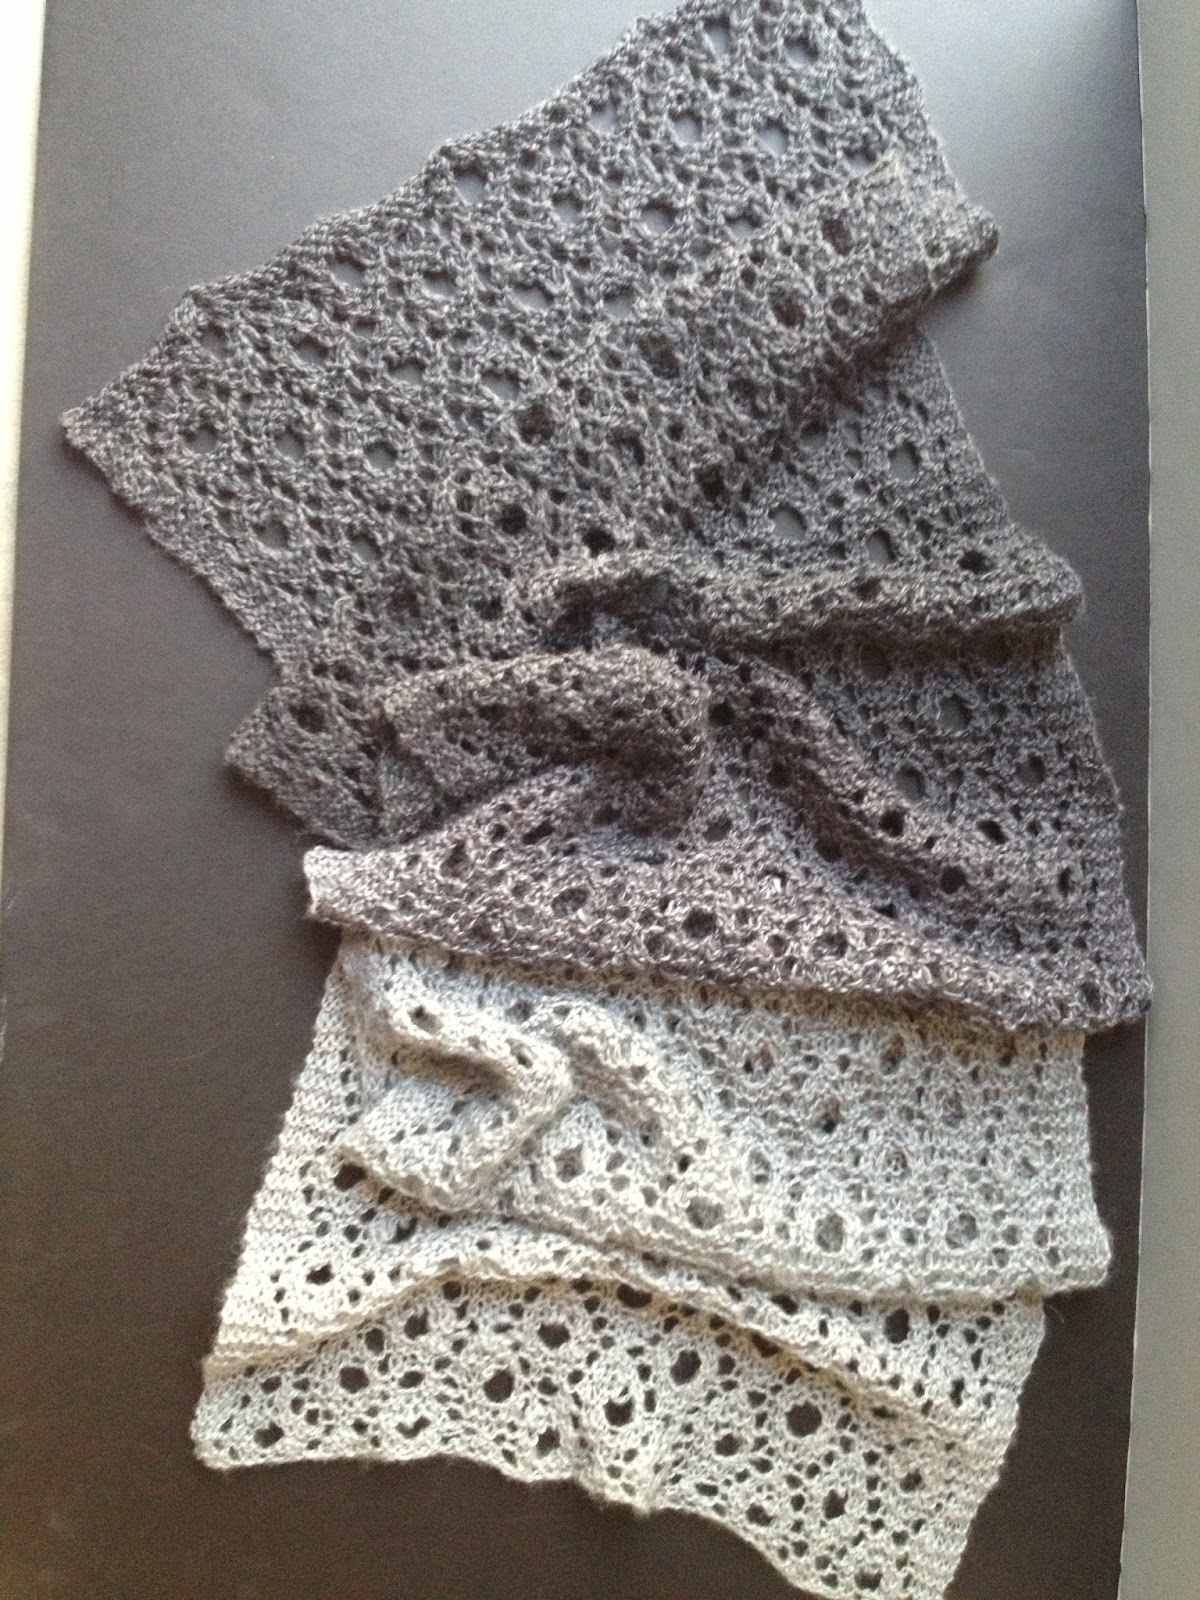 Reversible Knitting Patterns For Scarves Interesting Design Inspiration